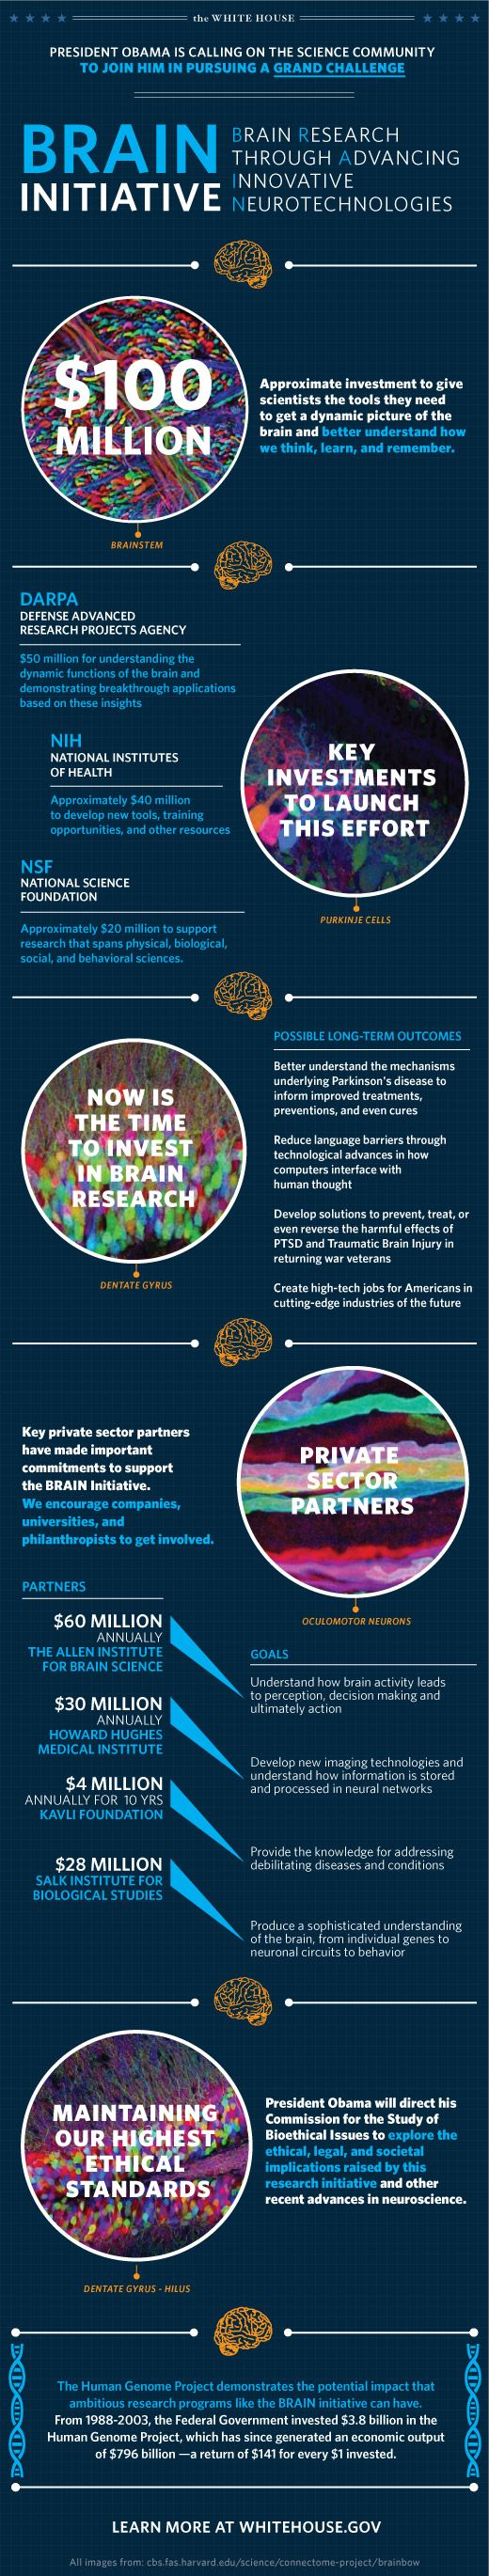 The BRAIN Initiative will help researchers better understand the human brain and find new ways to treat, cure, and even prevent brain disorders, such as Alzheimer's disease, epilepsy, and traumatic brain injury. Learn more: http://wh.gov/Lshr